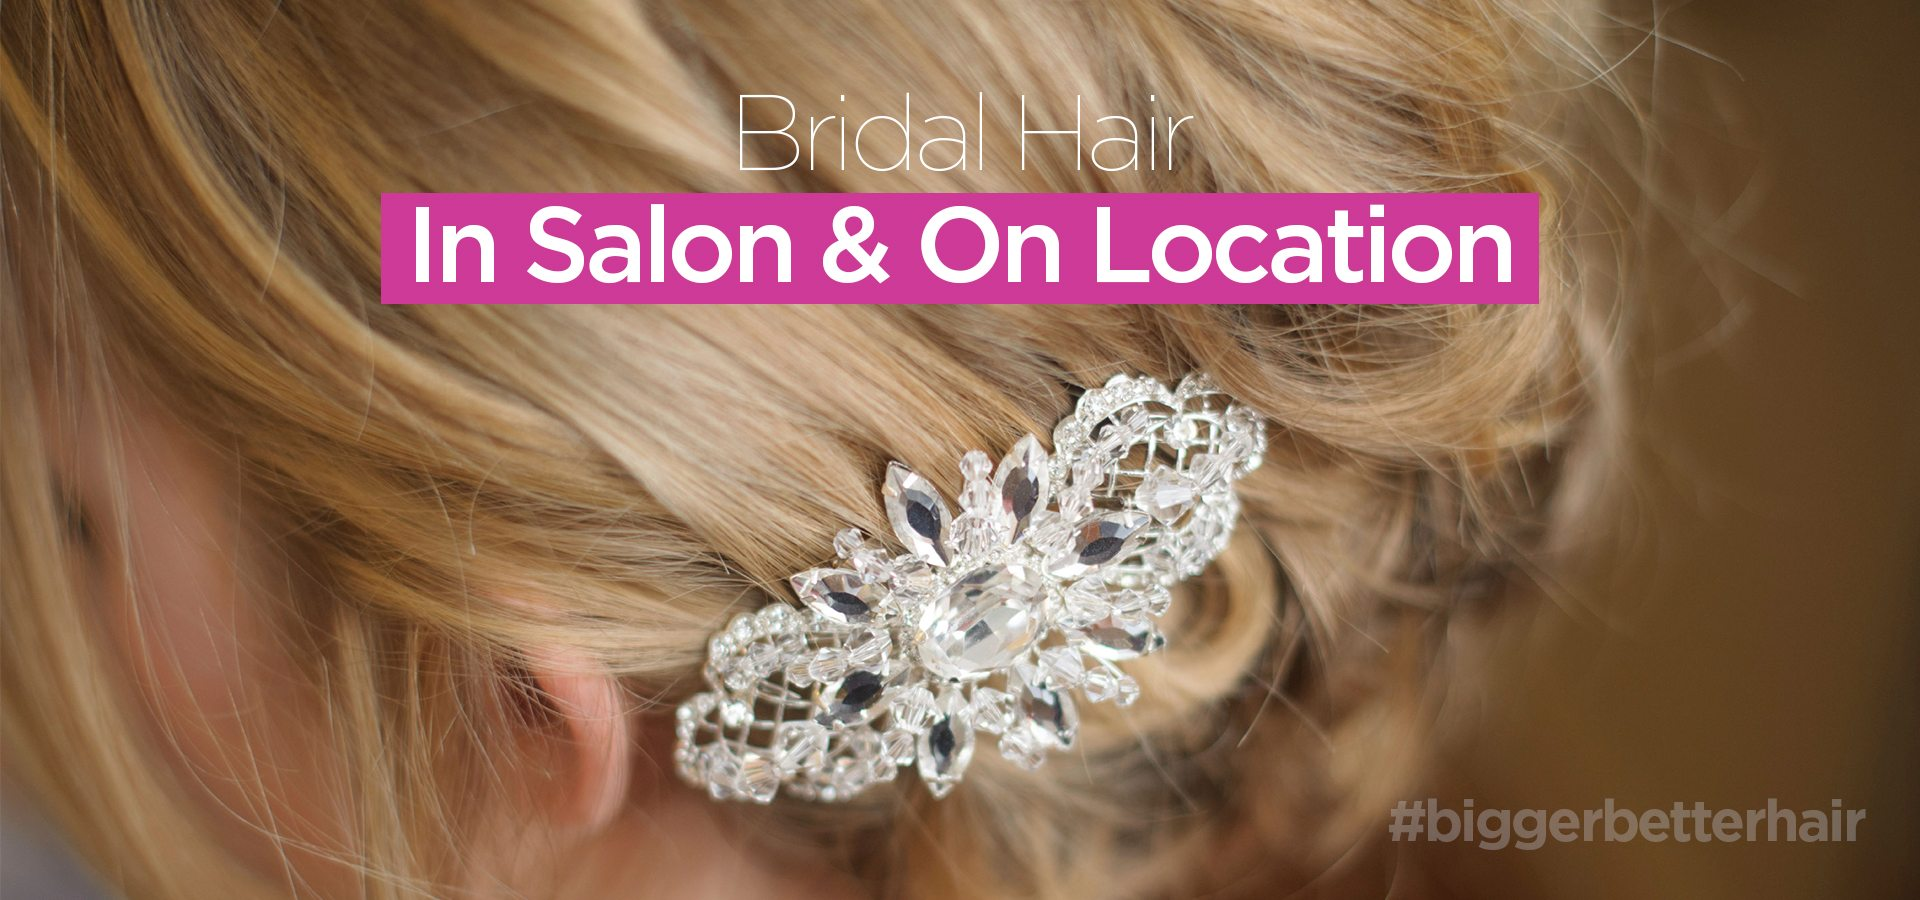 Bridal-Hair-In-Salon-On-Location-2